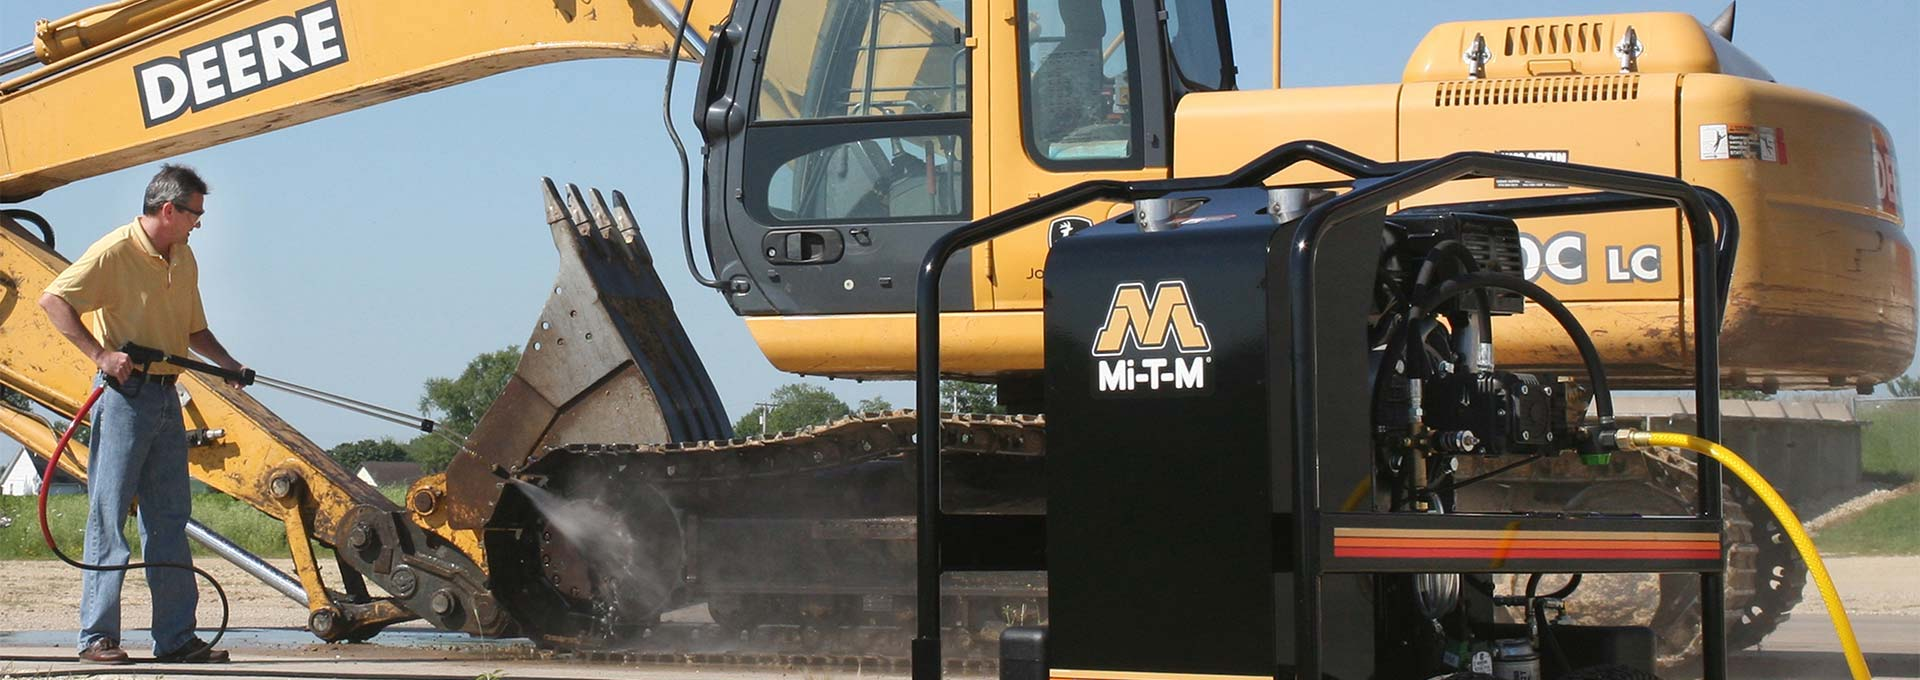 Mi-T-M Pressure Cleaning Equipment